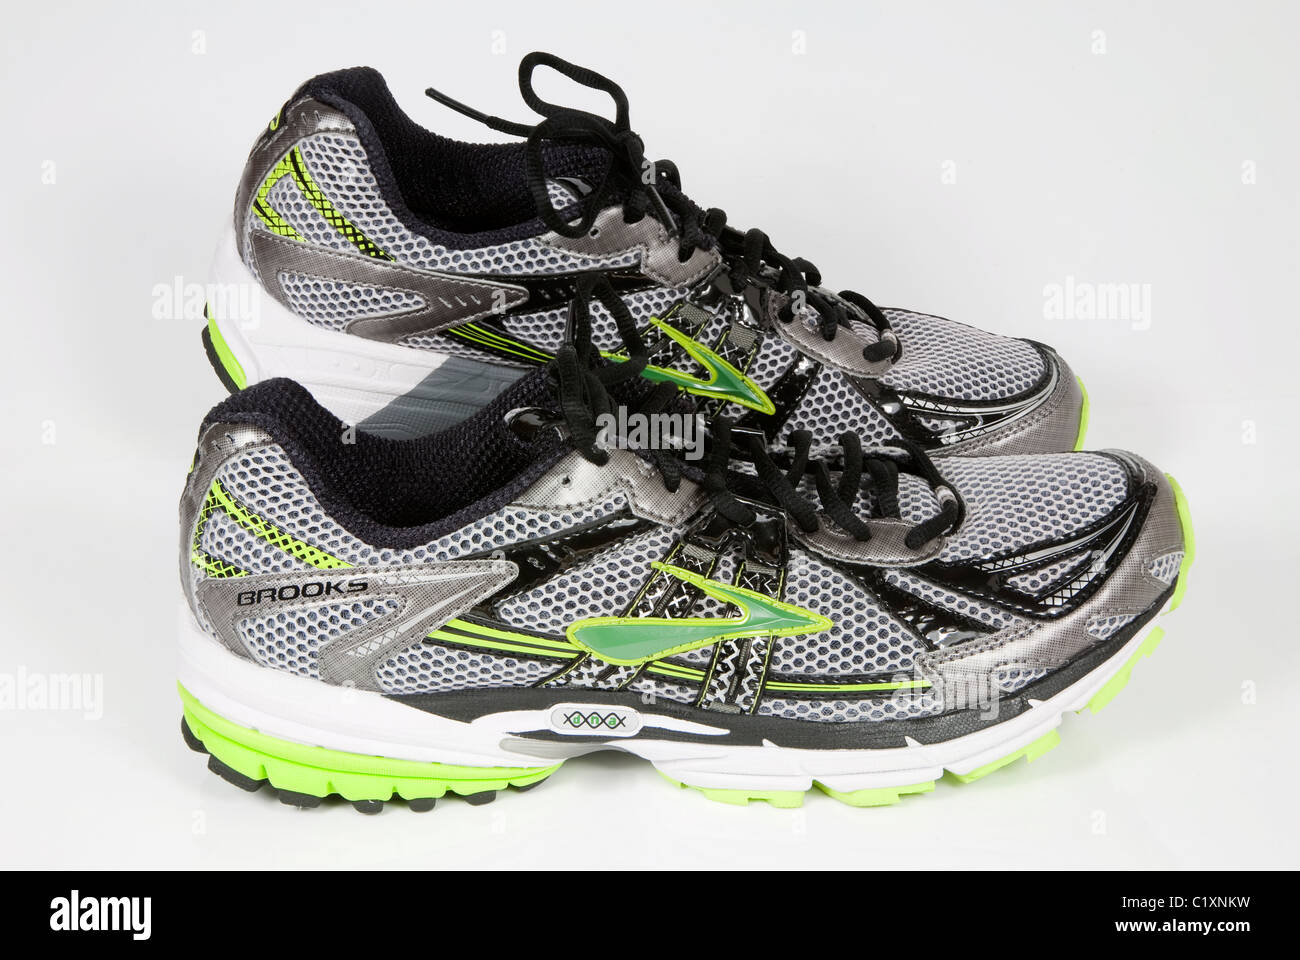 pair of trainers running shoes stock photos pair of trainers